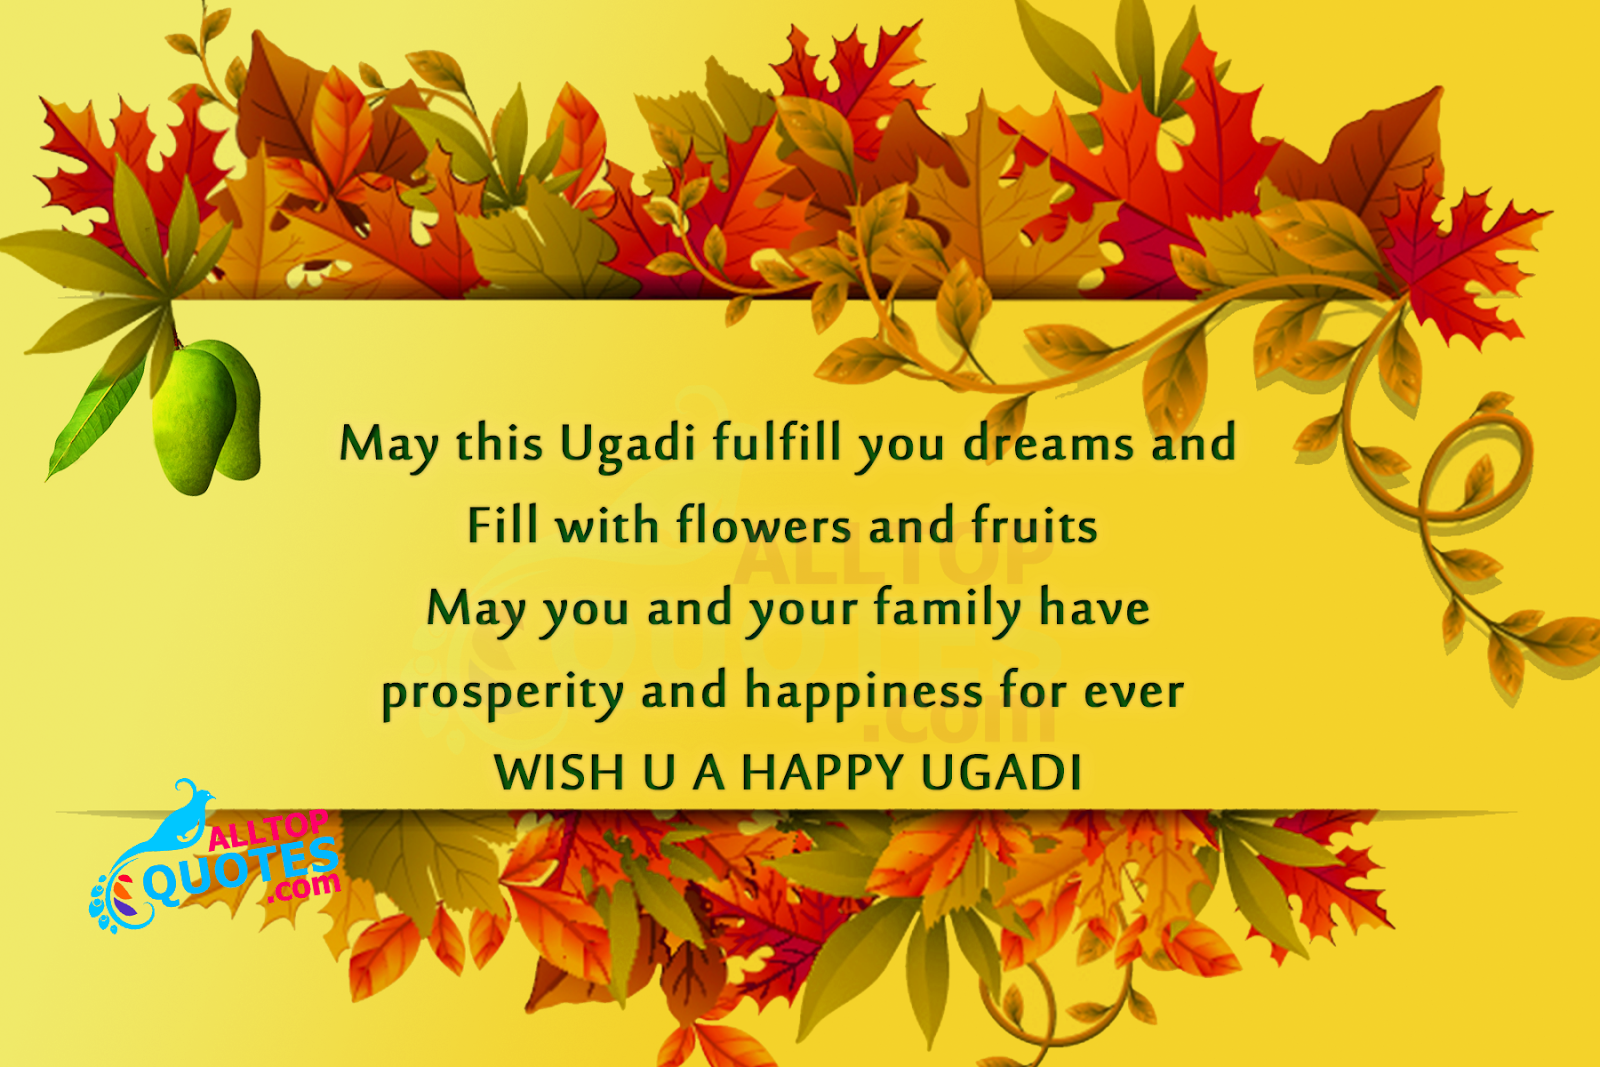 Happy ugadi wishes sms quotes images in english all top quotes happy ugadi wishes sms quotes images in english all top quotes telugu quotes tamil quotes english quotes kannada quotes hindi quotes m4hsunfo